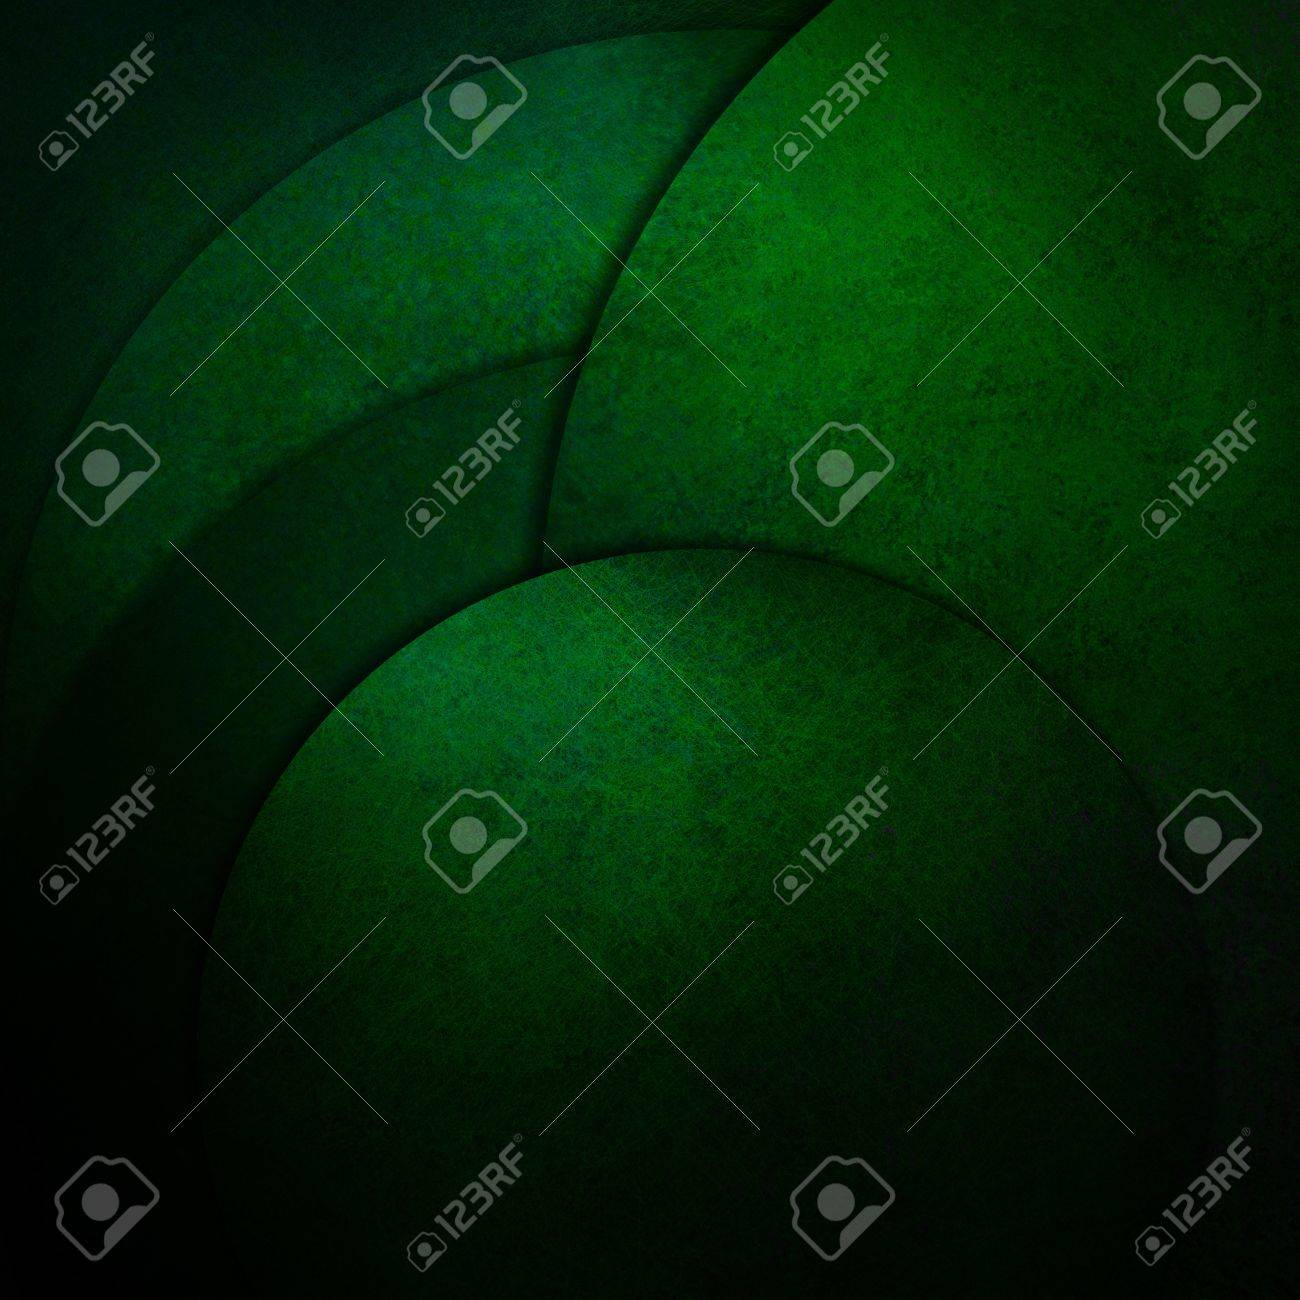 abstract green background paper, geometric round circle layers, artistic design layout, vintage grunge texture background, elegant modern art composition, green Christmas card background decoration Stock Photo - 16713335